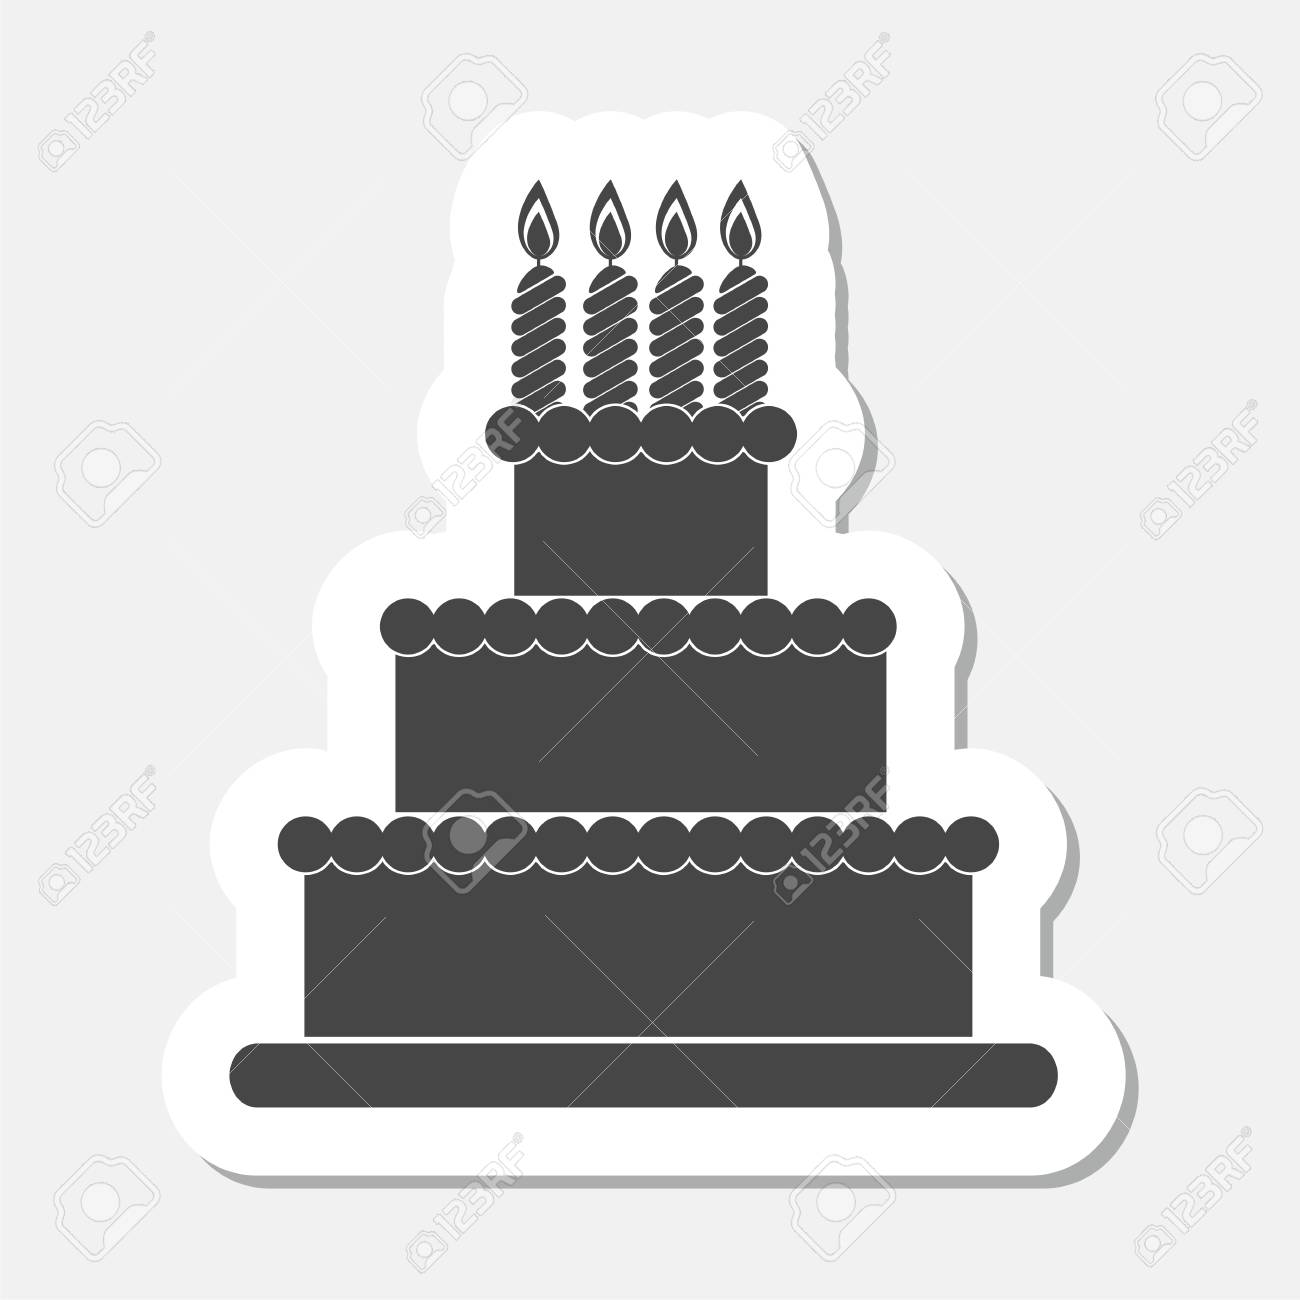 Birthday Cake Sticker Royalty Free Cliparts Vectors And Stock